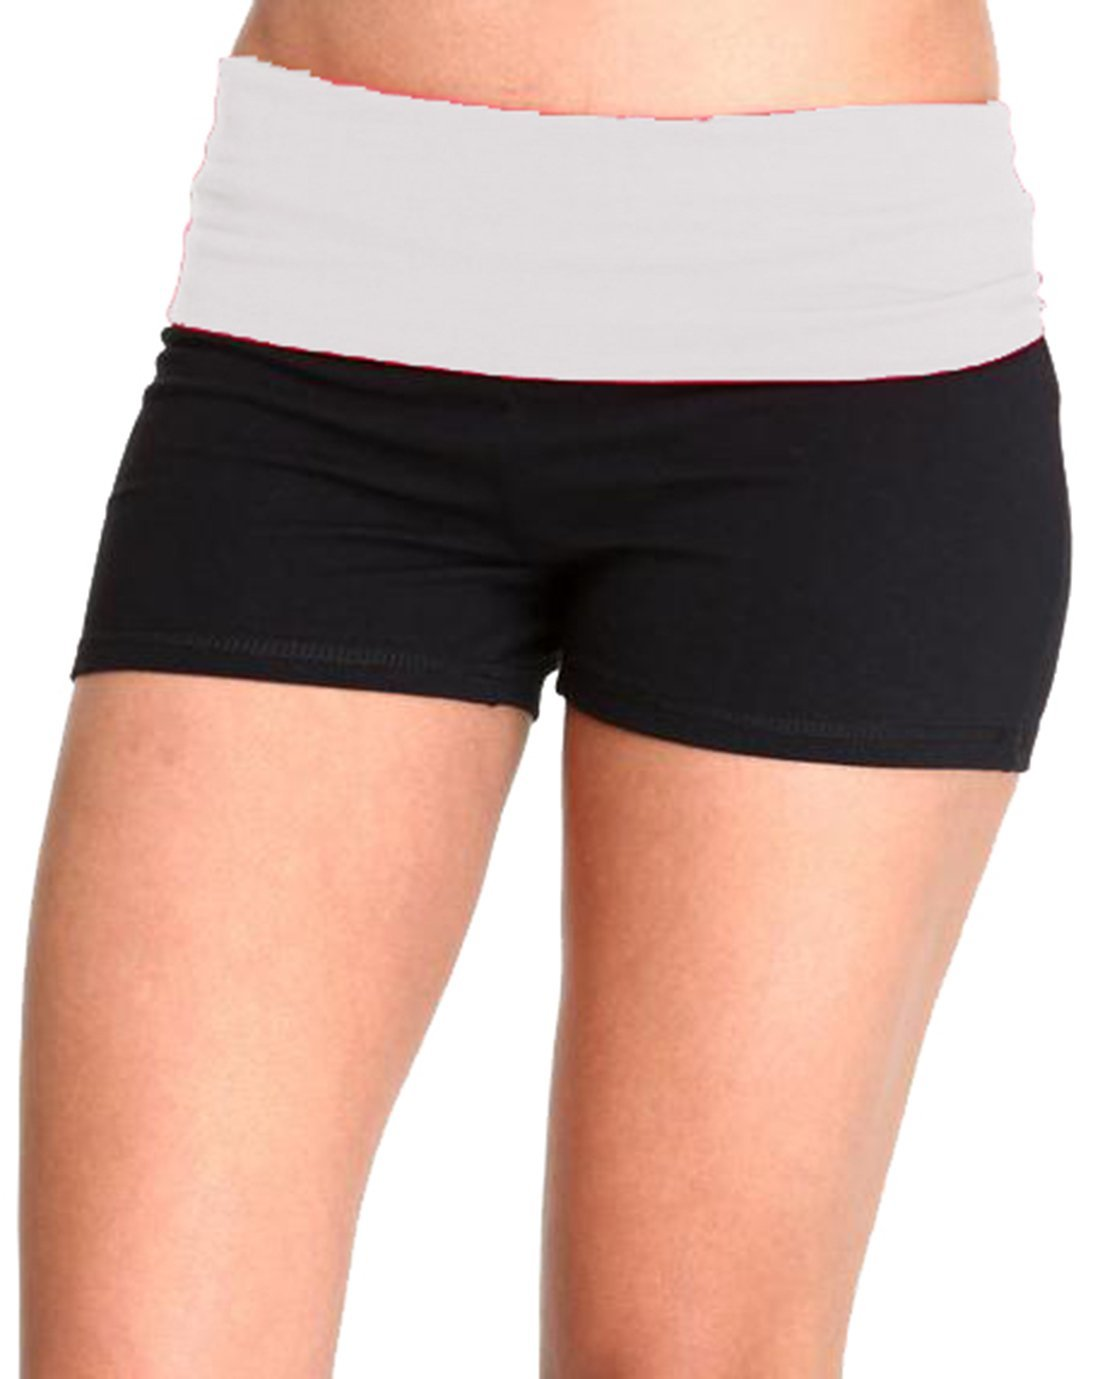 Waist Band Contrast Yoga Fold Over Shorts